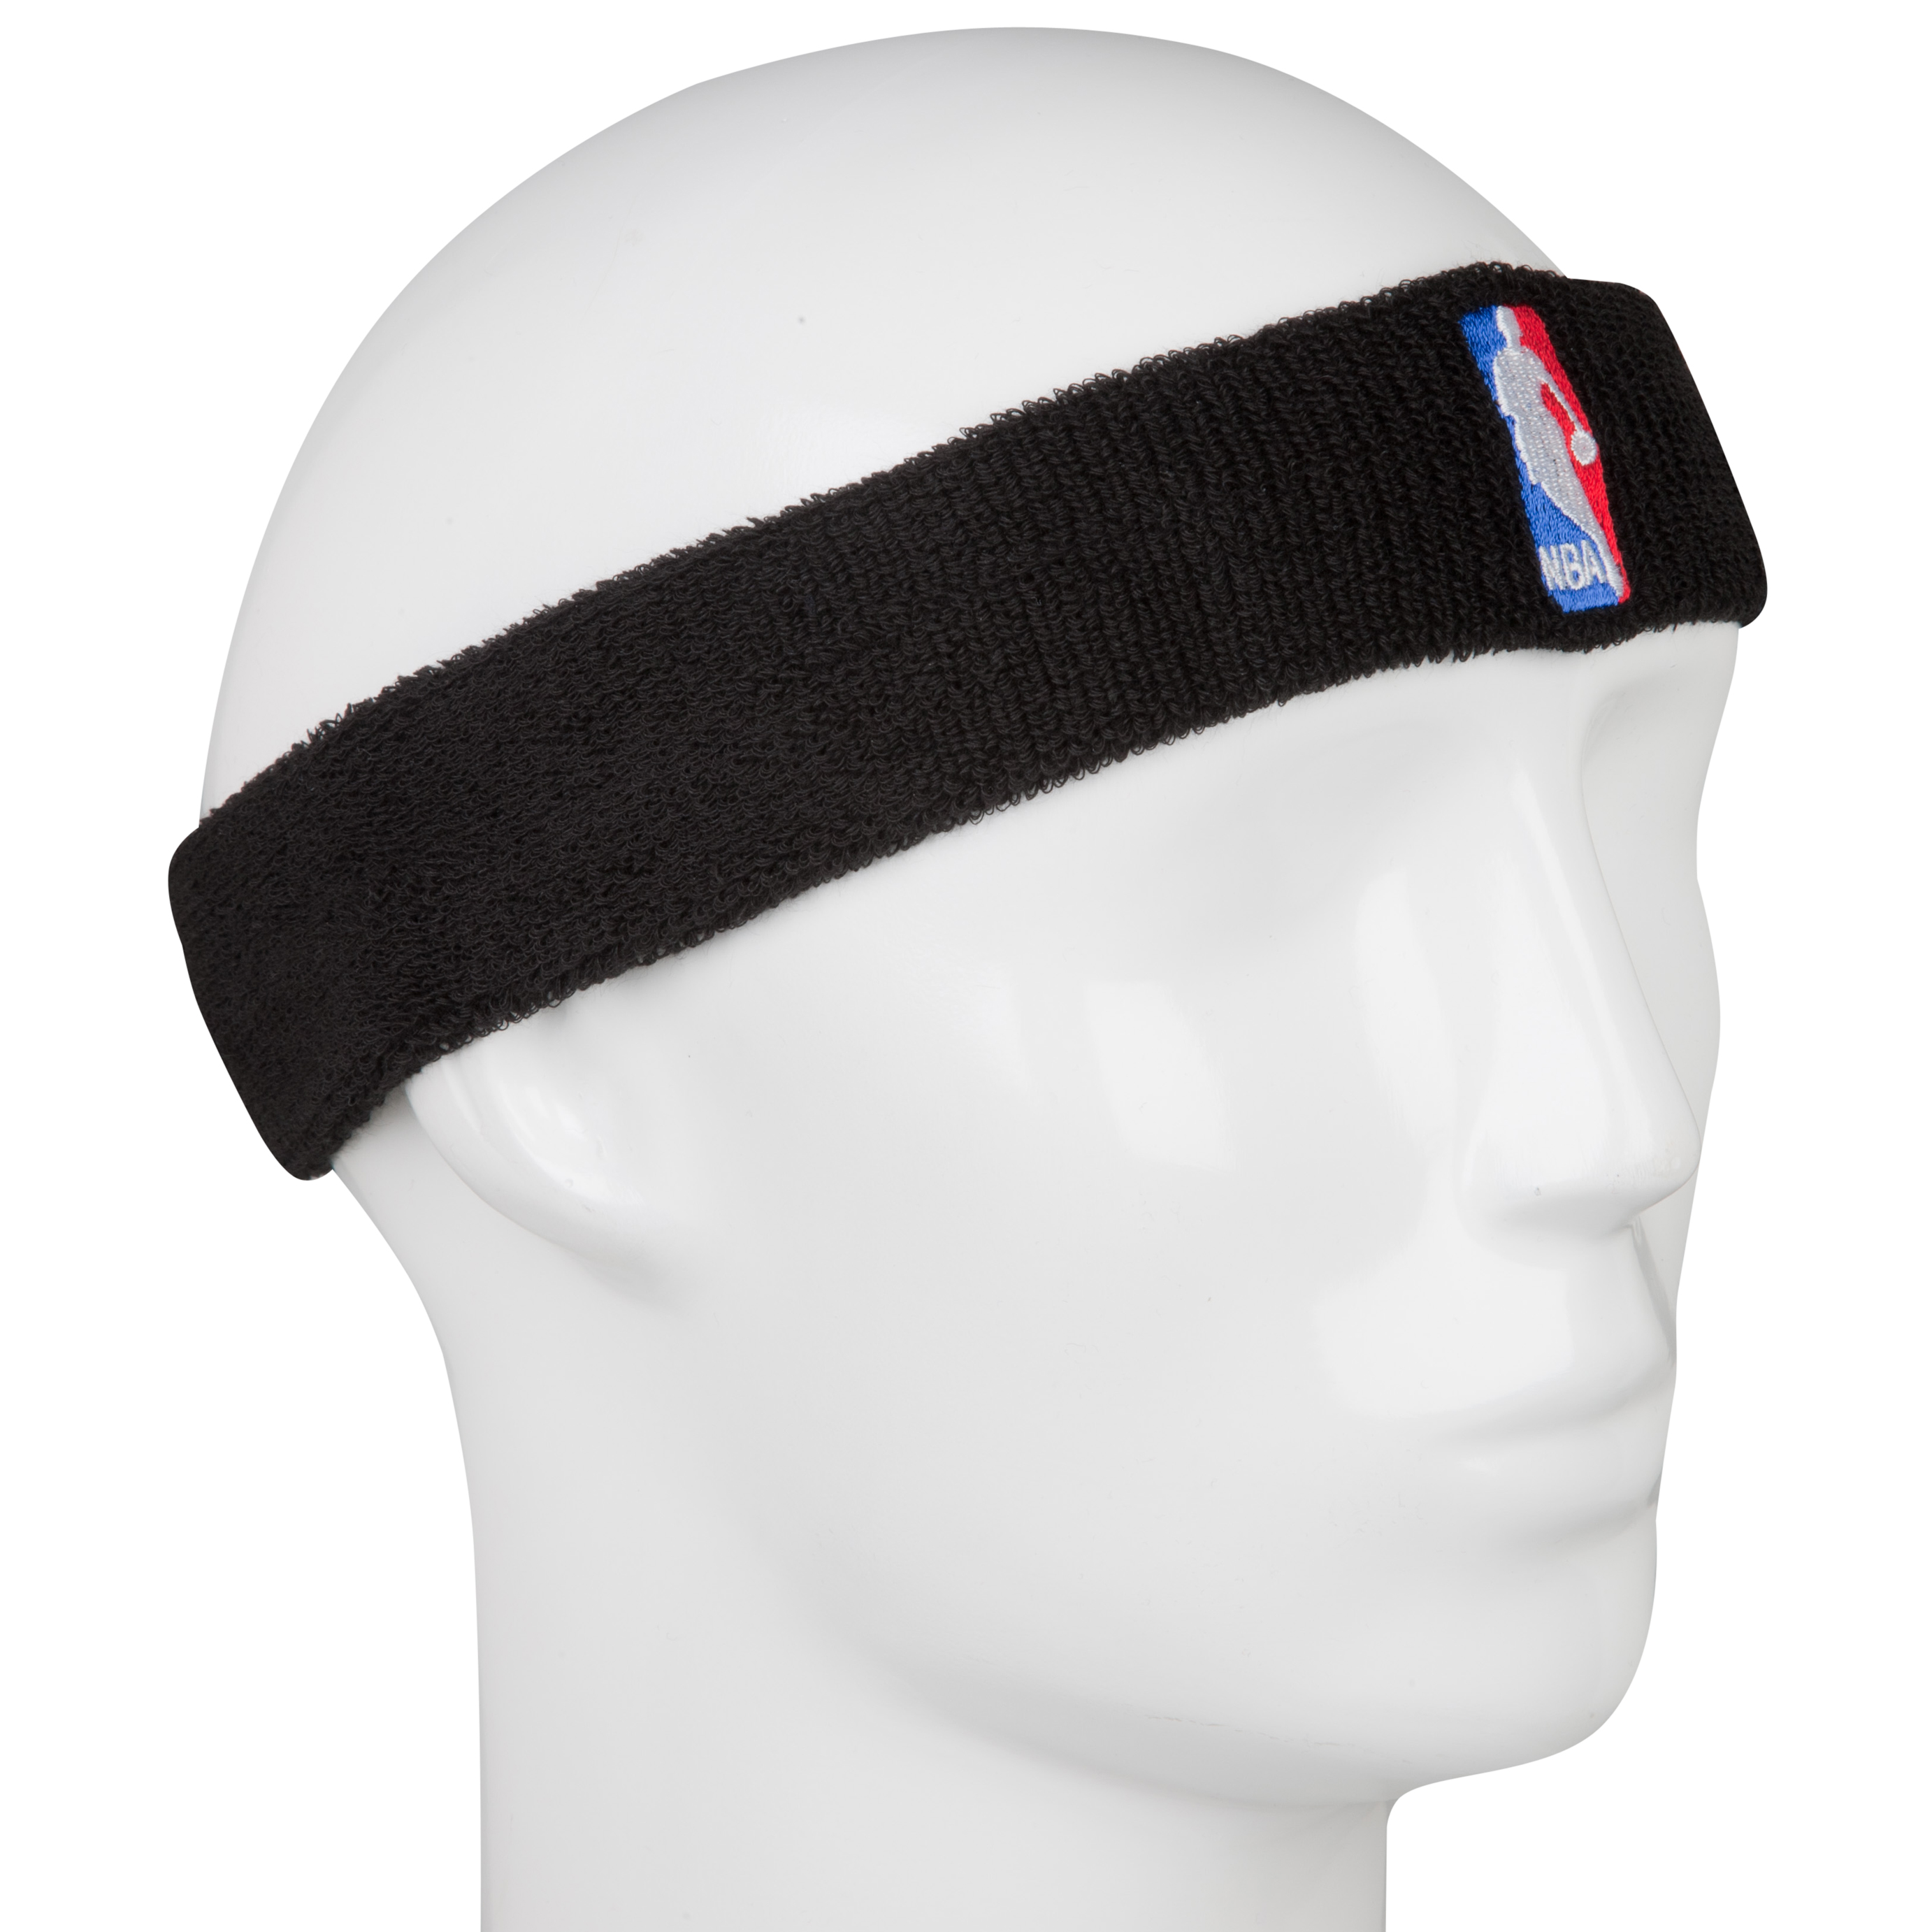 NBA Logoman Headband - Black